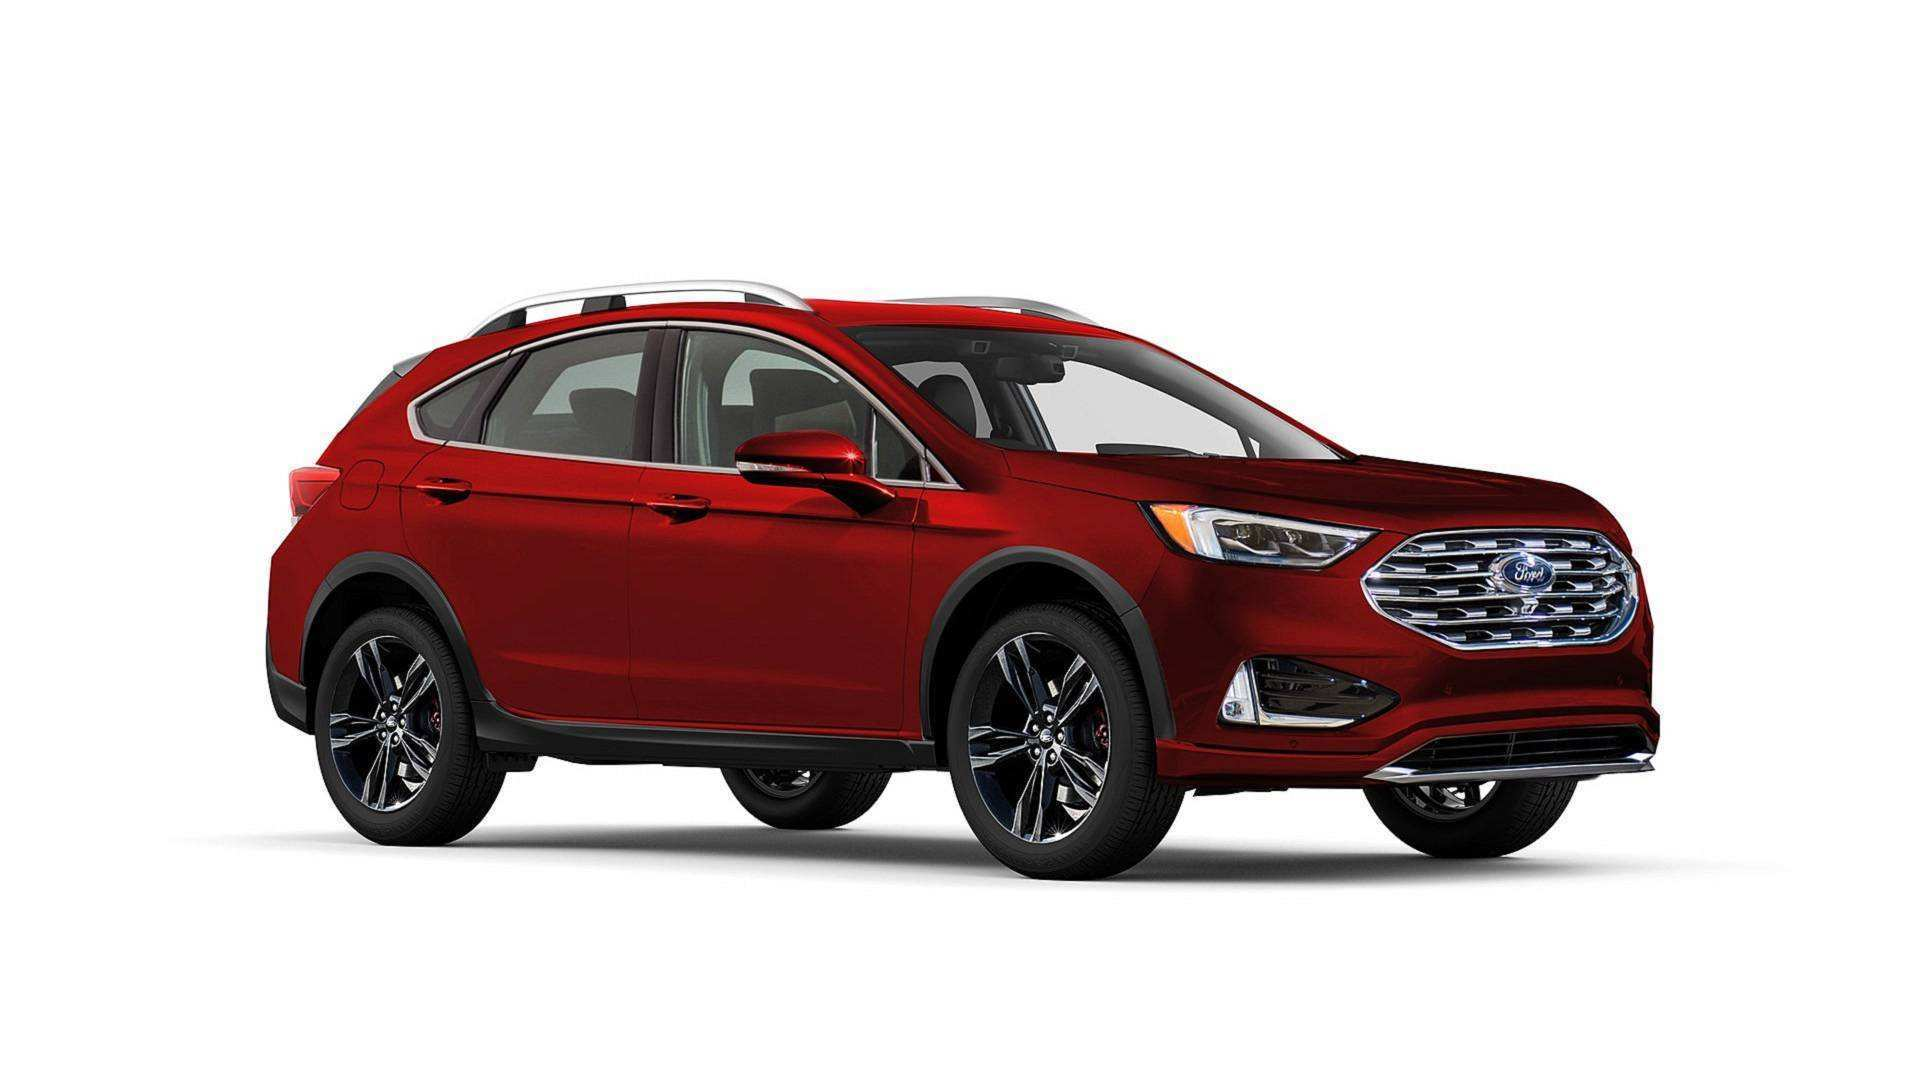 54 Best Review 2020 Ford Fusion Overview with 2020 Ford Fusion